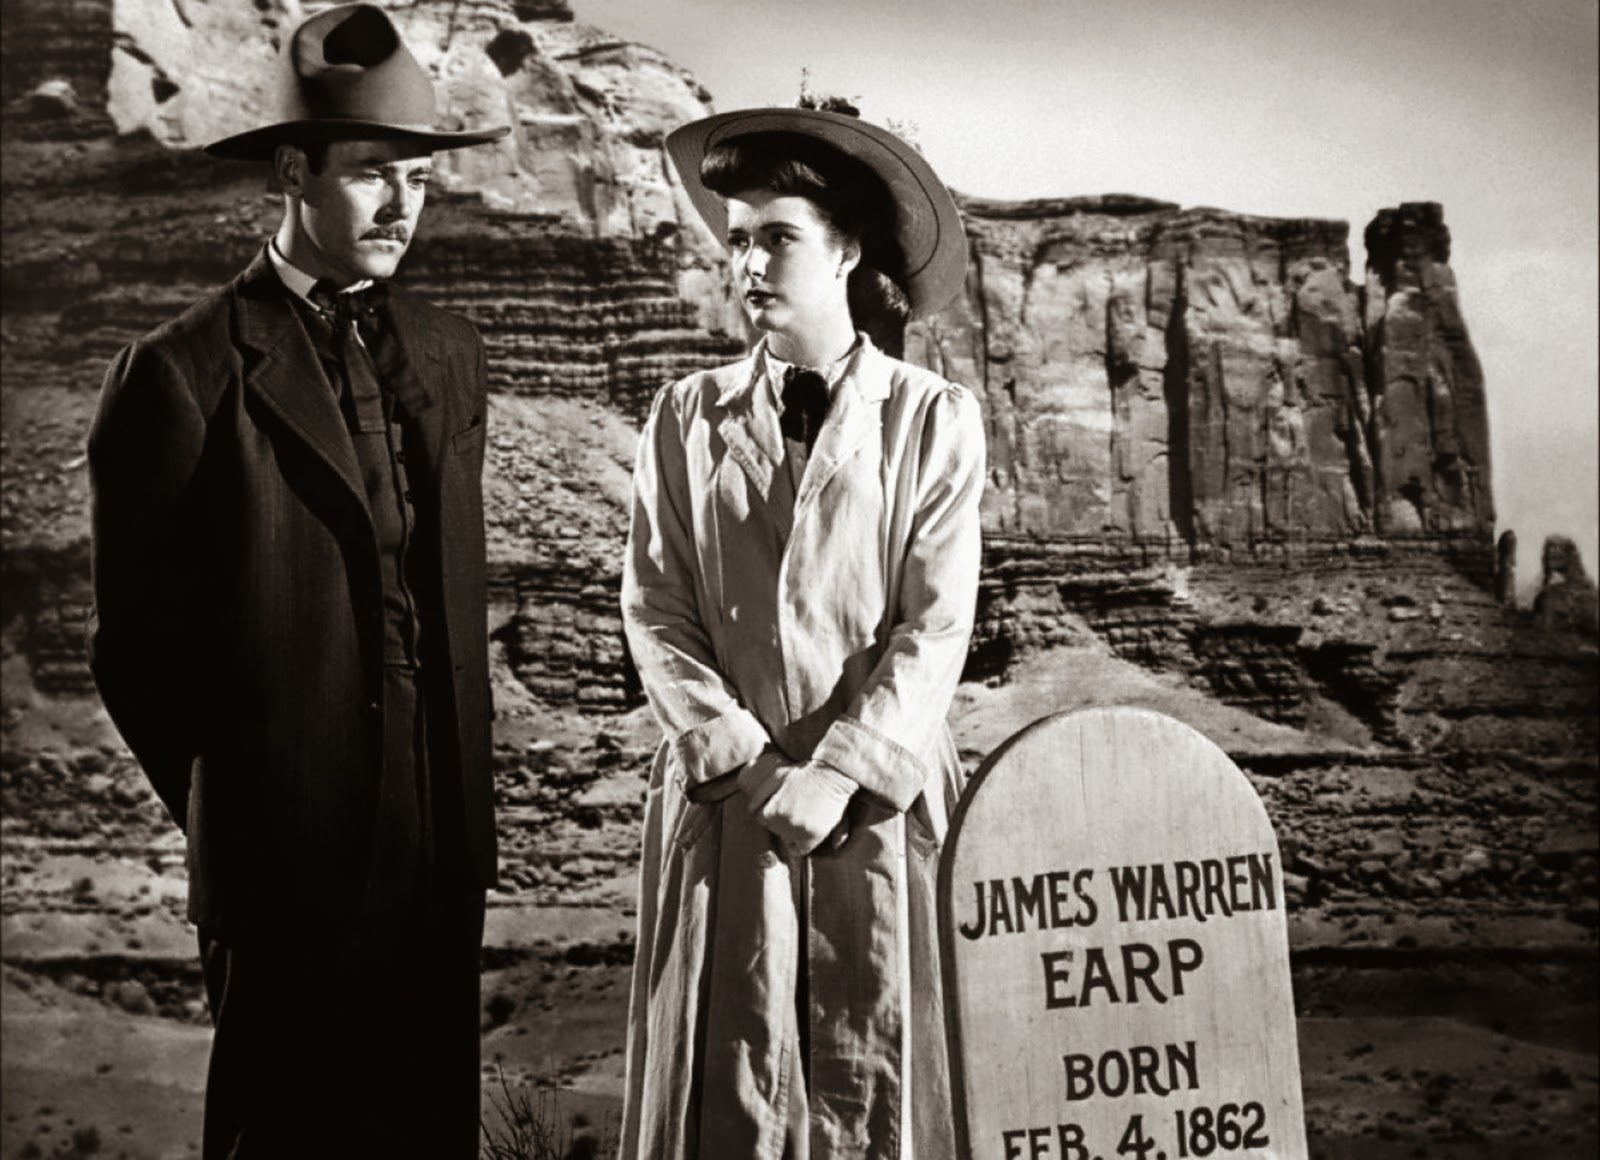 a review of my darling clementine a movie by john ford Usa, 1946 director: john ford production: twentieth century-fox black and white, 35mm running time: 97 minutes released november 1946 filmed on.